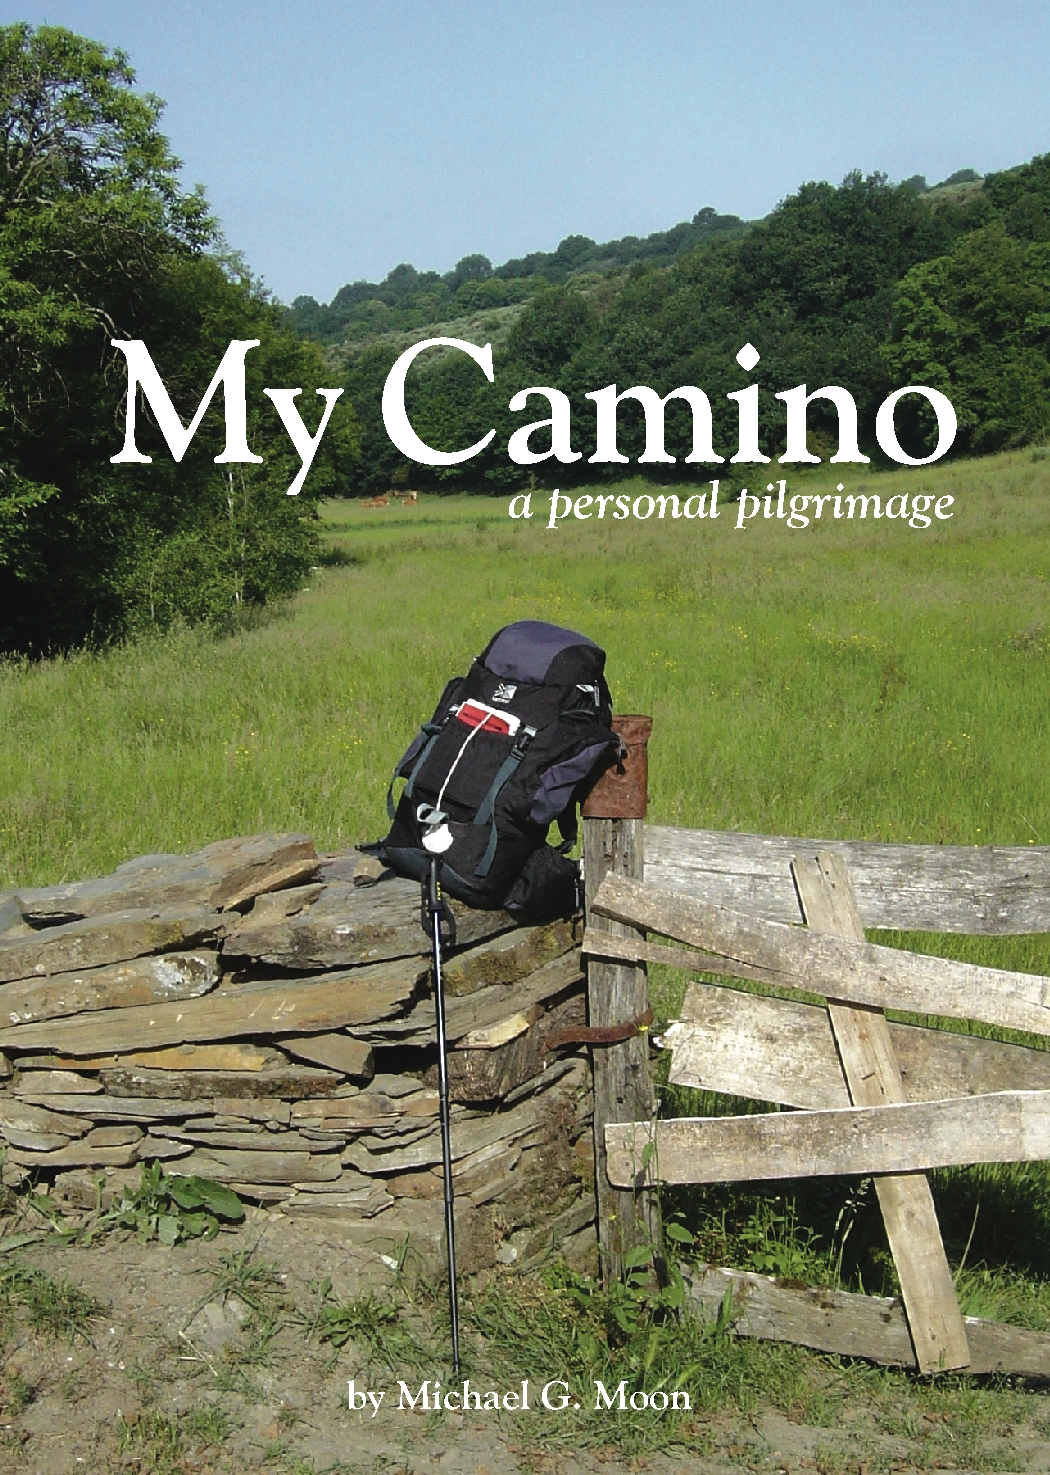 My Camino, a personal pilgrimage